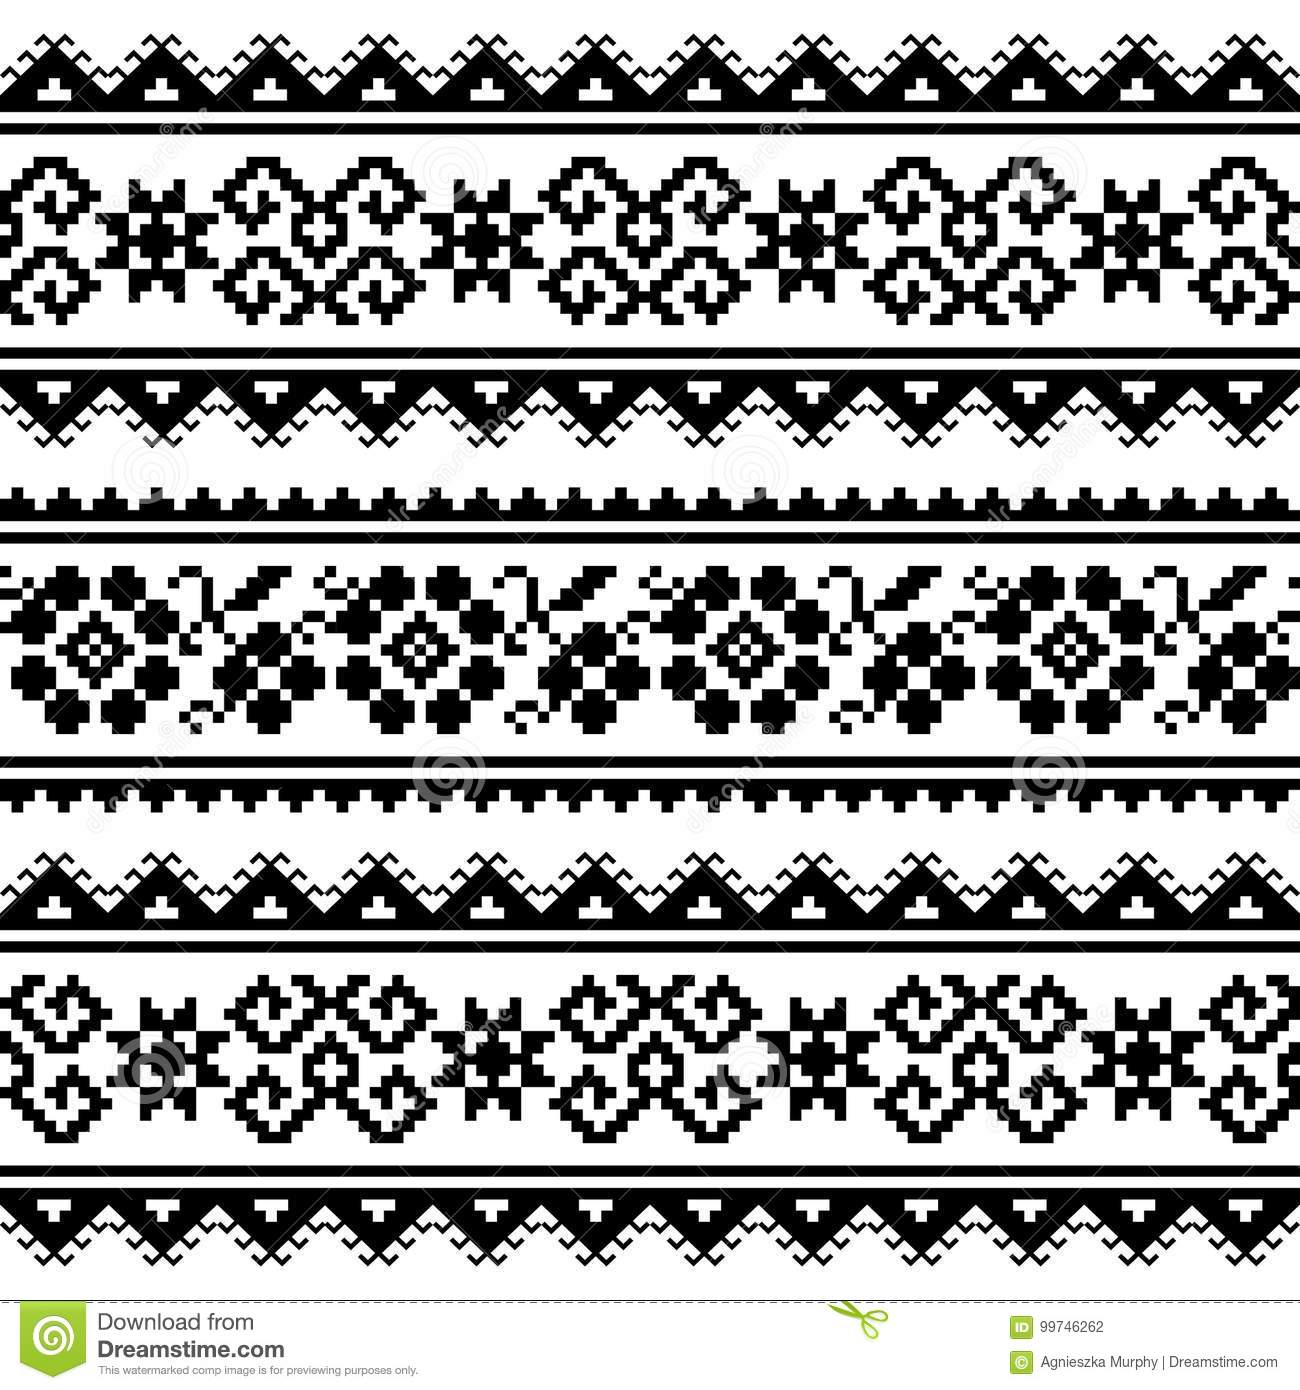 Ukrainian Or Belarusian Folk Art Embroidery Pattern Or Print In ...